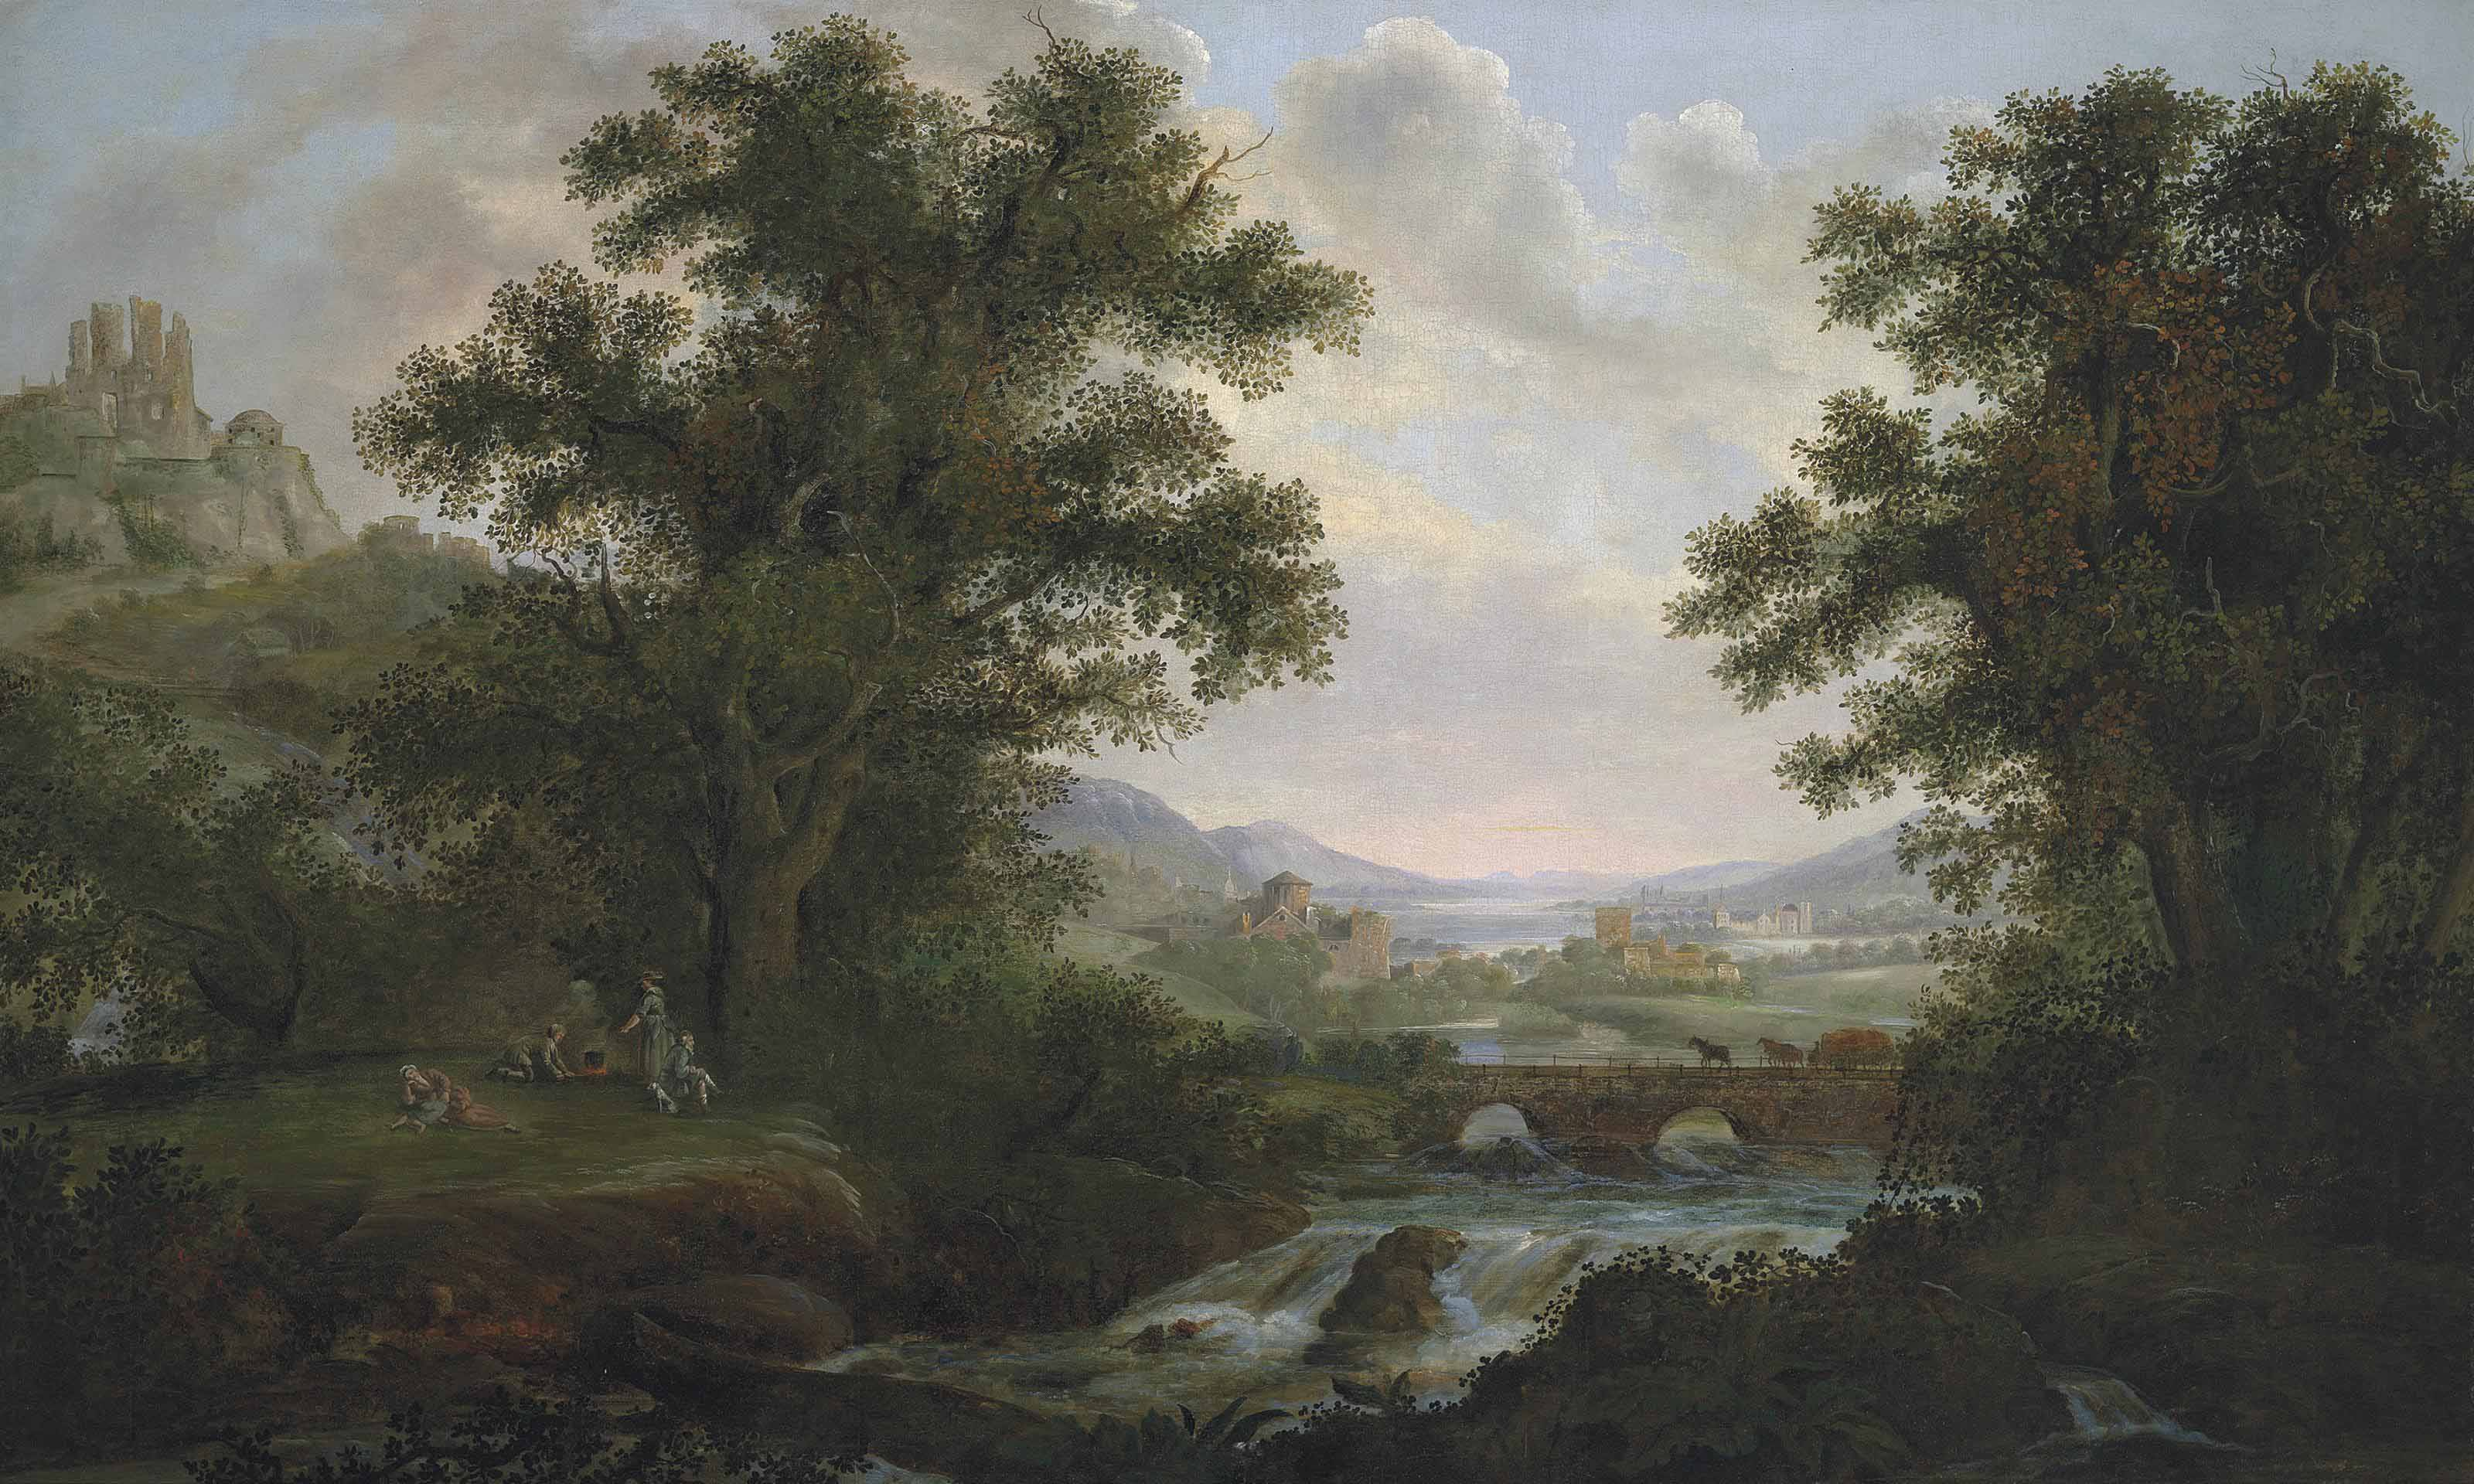 An Italianate river landscape with figures by a campfire, overlooked by ruins on a hilltop, drovers crossing a bridge, a town beyond